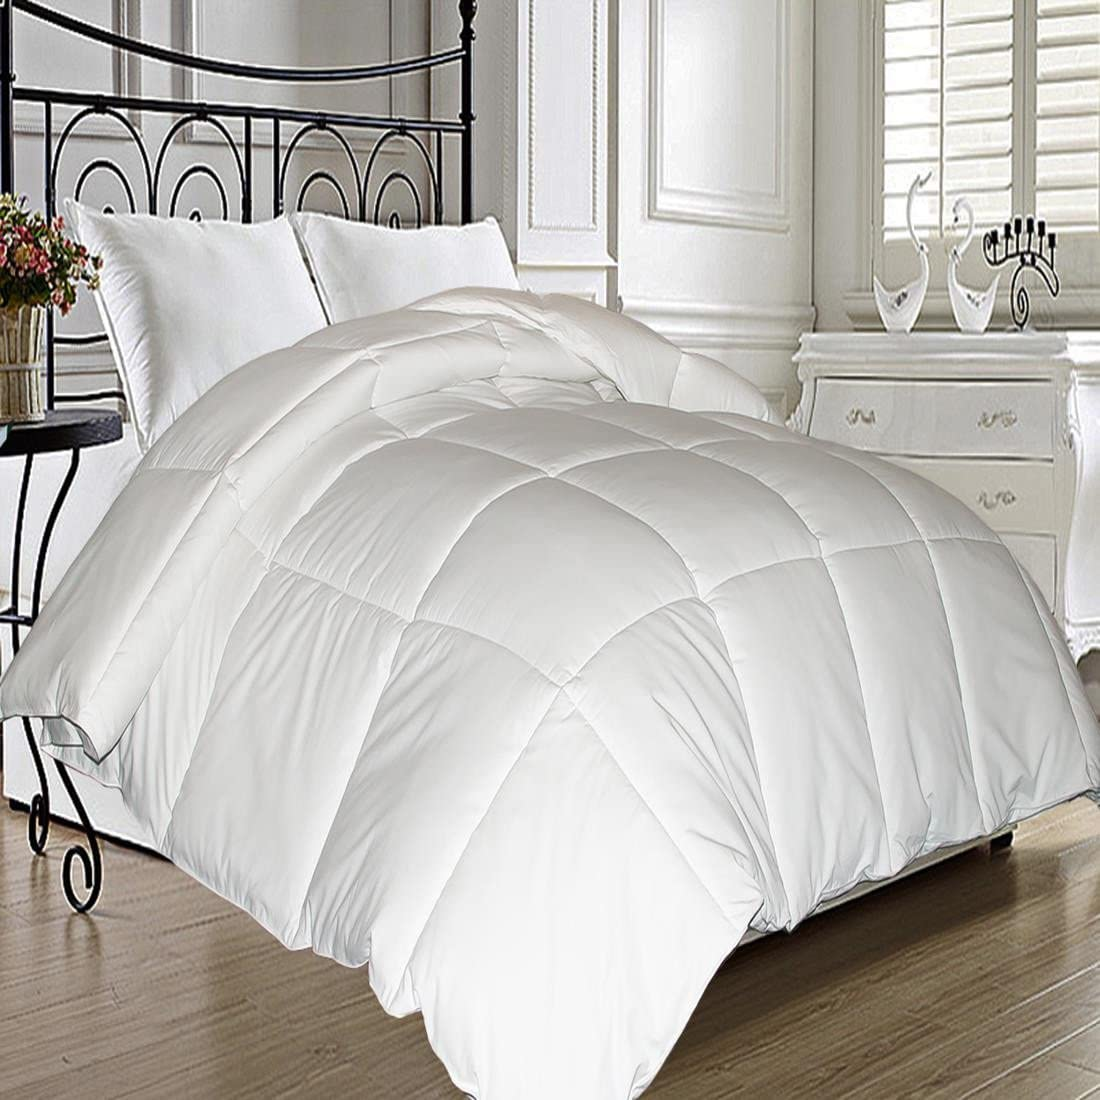 Blue Ridge Home Fashions Microfiber Natural Feather Down Fiber Blend Comforter - King